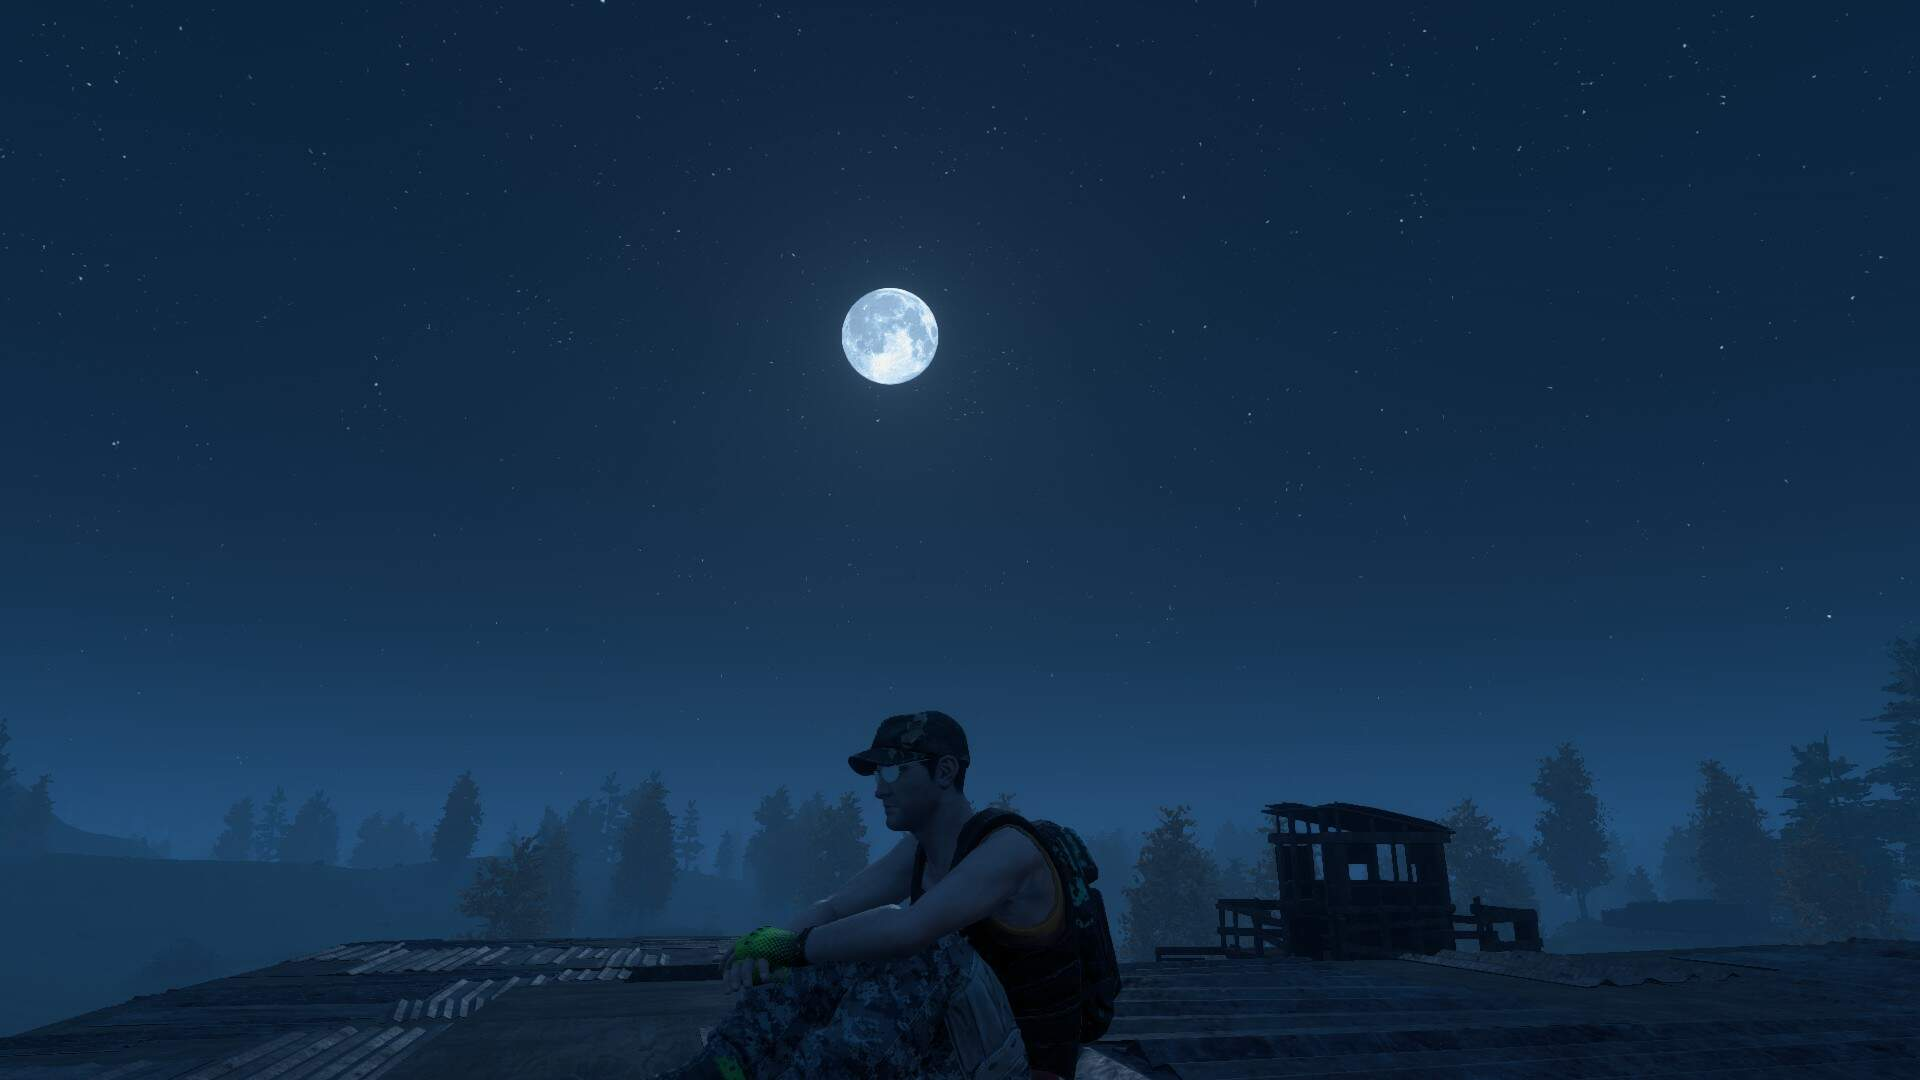 H1Z1: Just Survive - AR-15 Locations